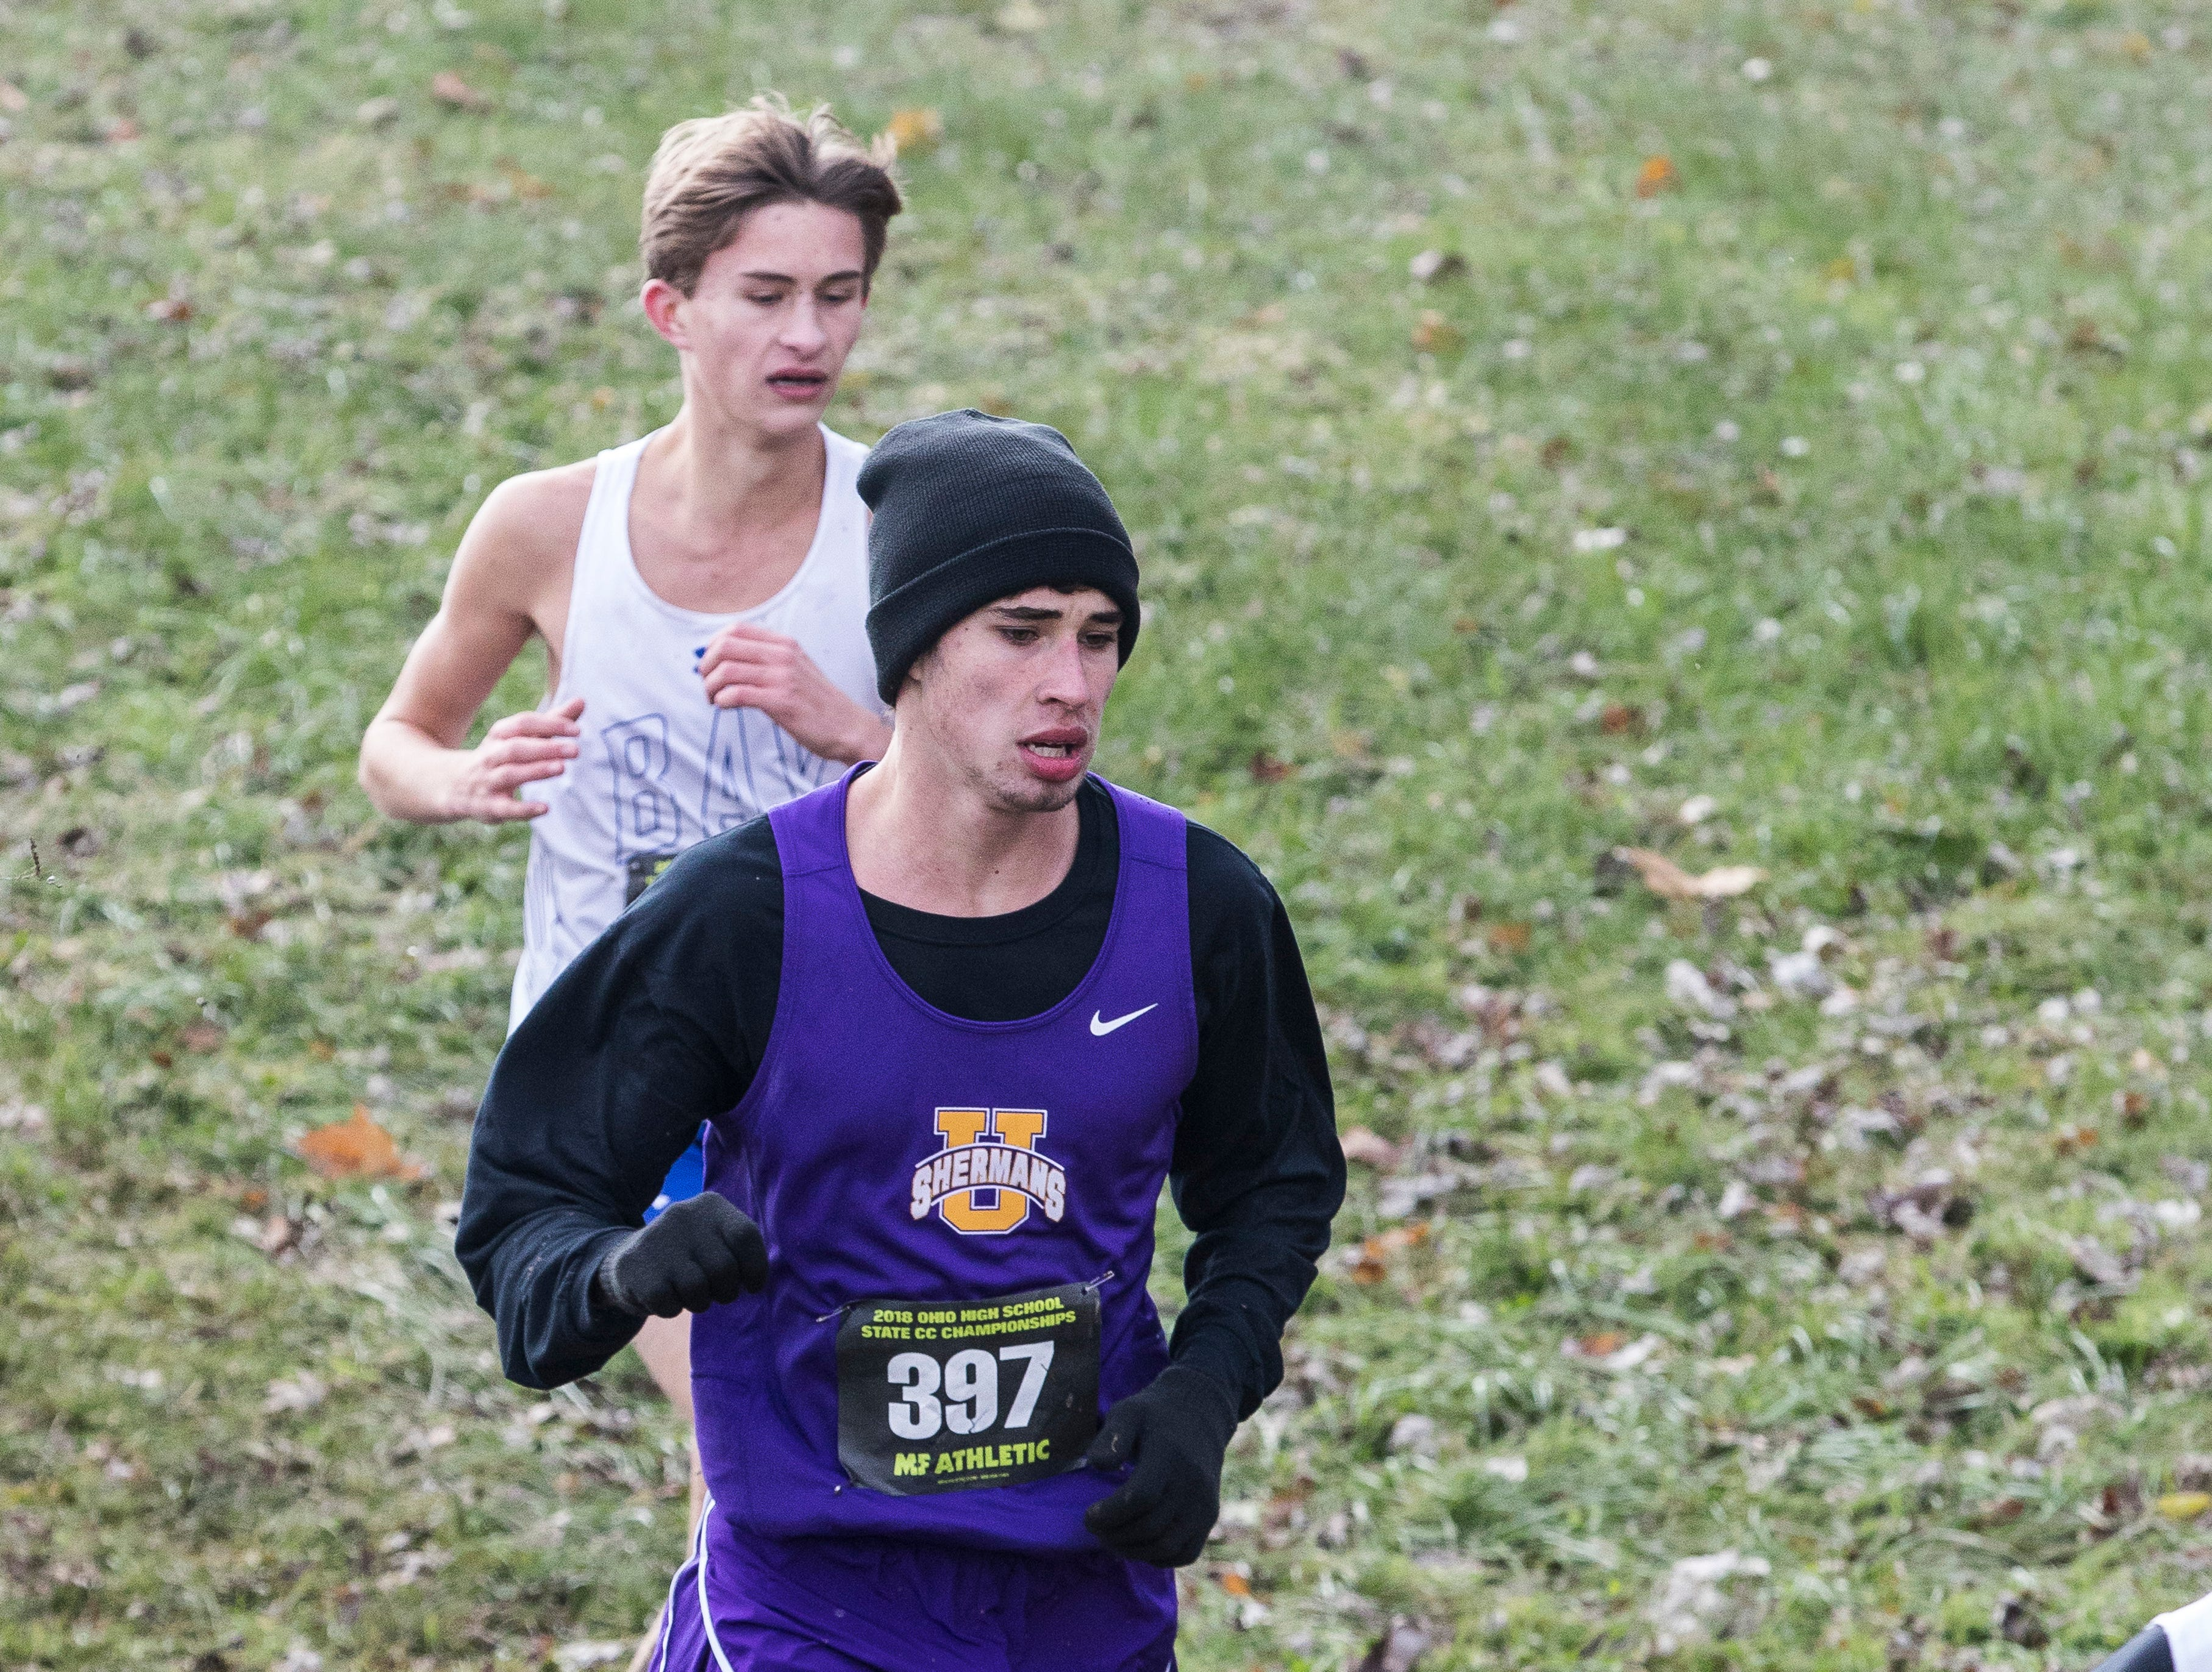 High school runners from all over Ohio competed at the 2018 OHSAA Cross-Country State Tournament on Saturday, November 10, 2018, at National Trail Raceway in Hebron, Ohio.